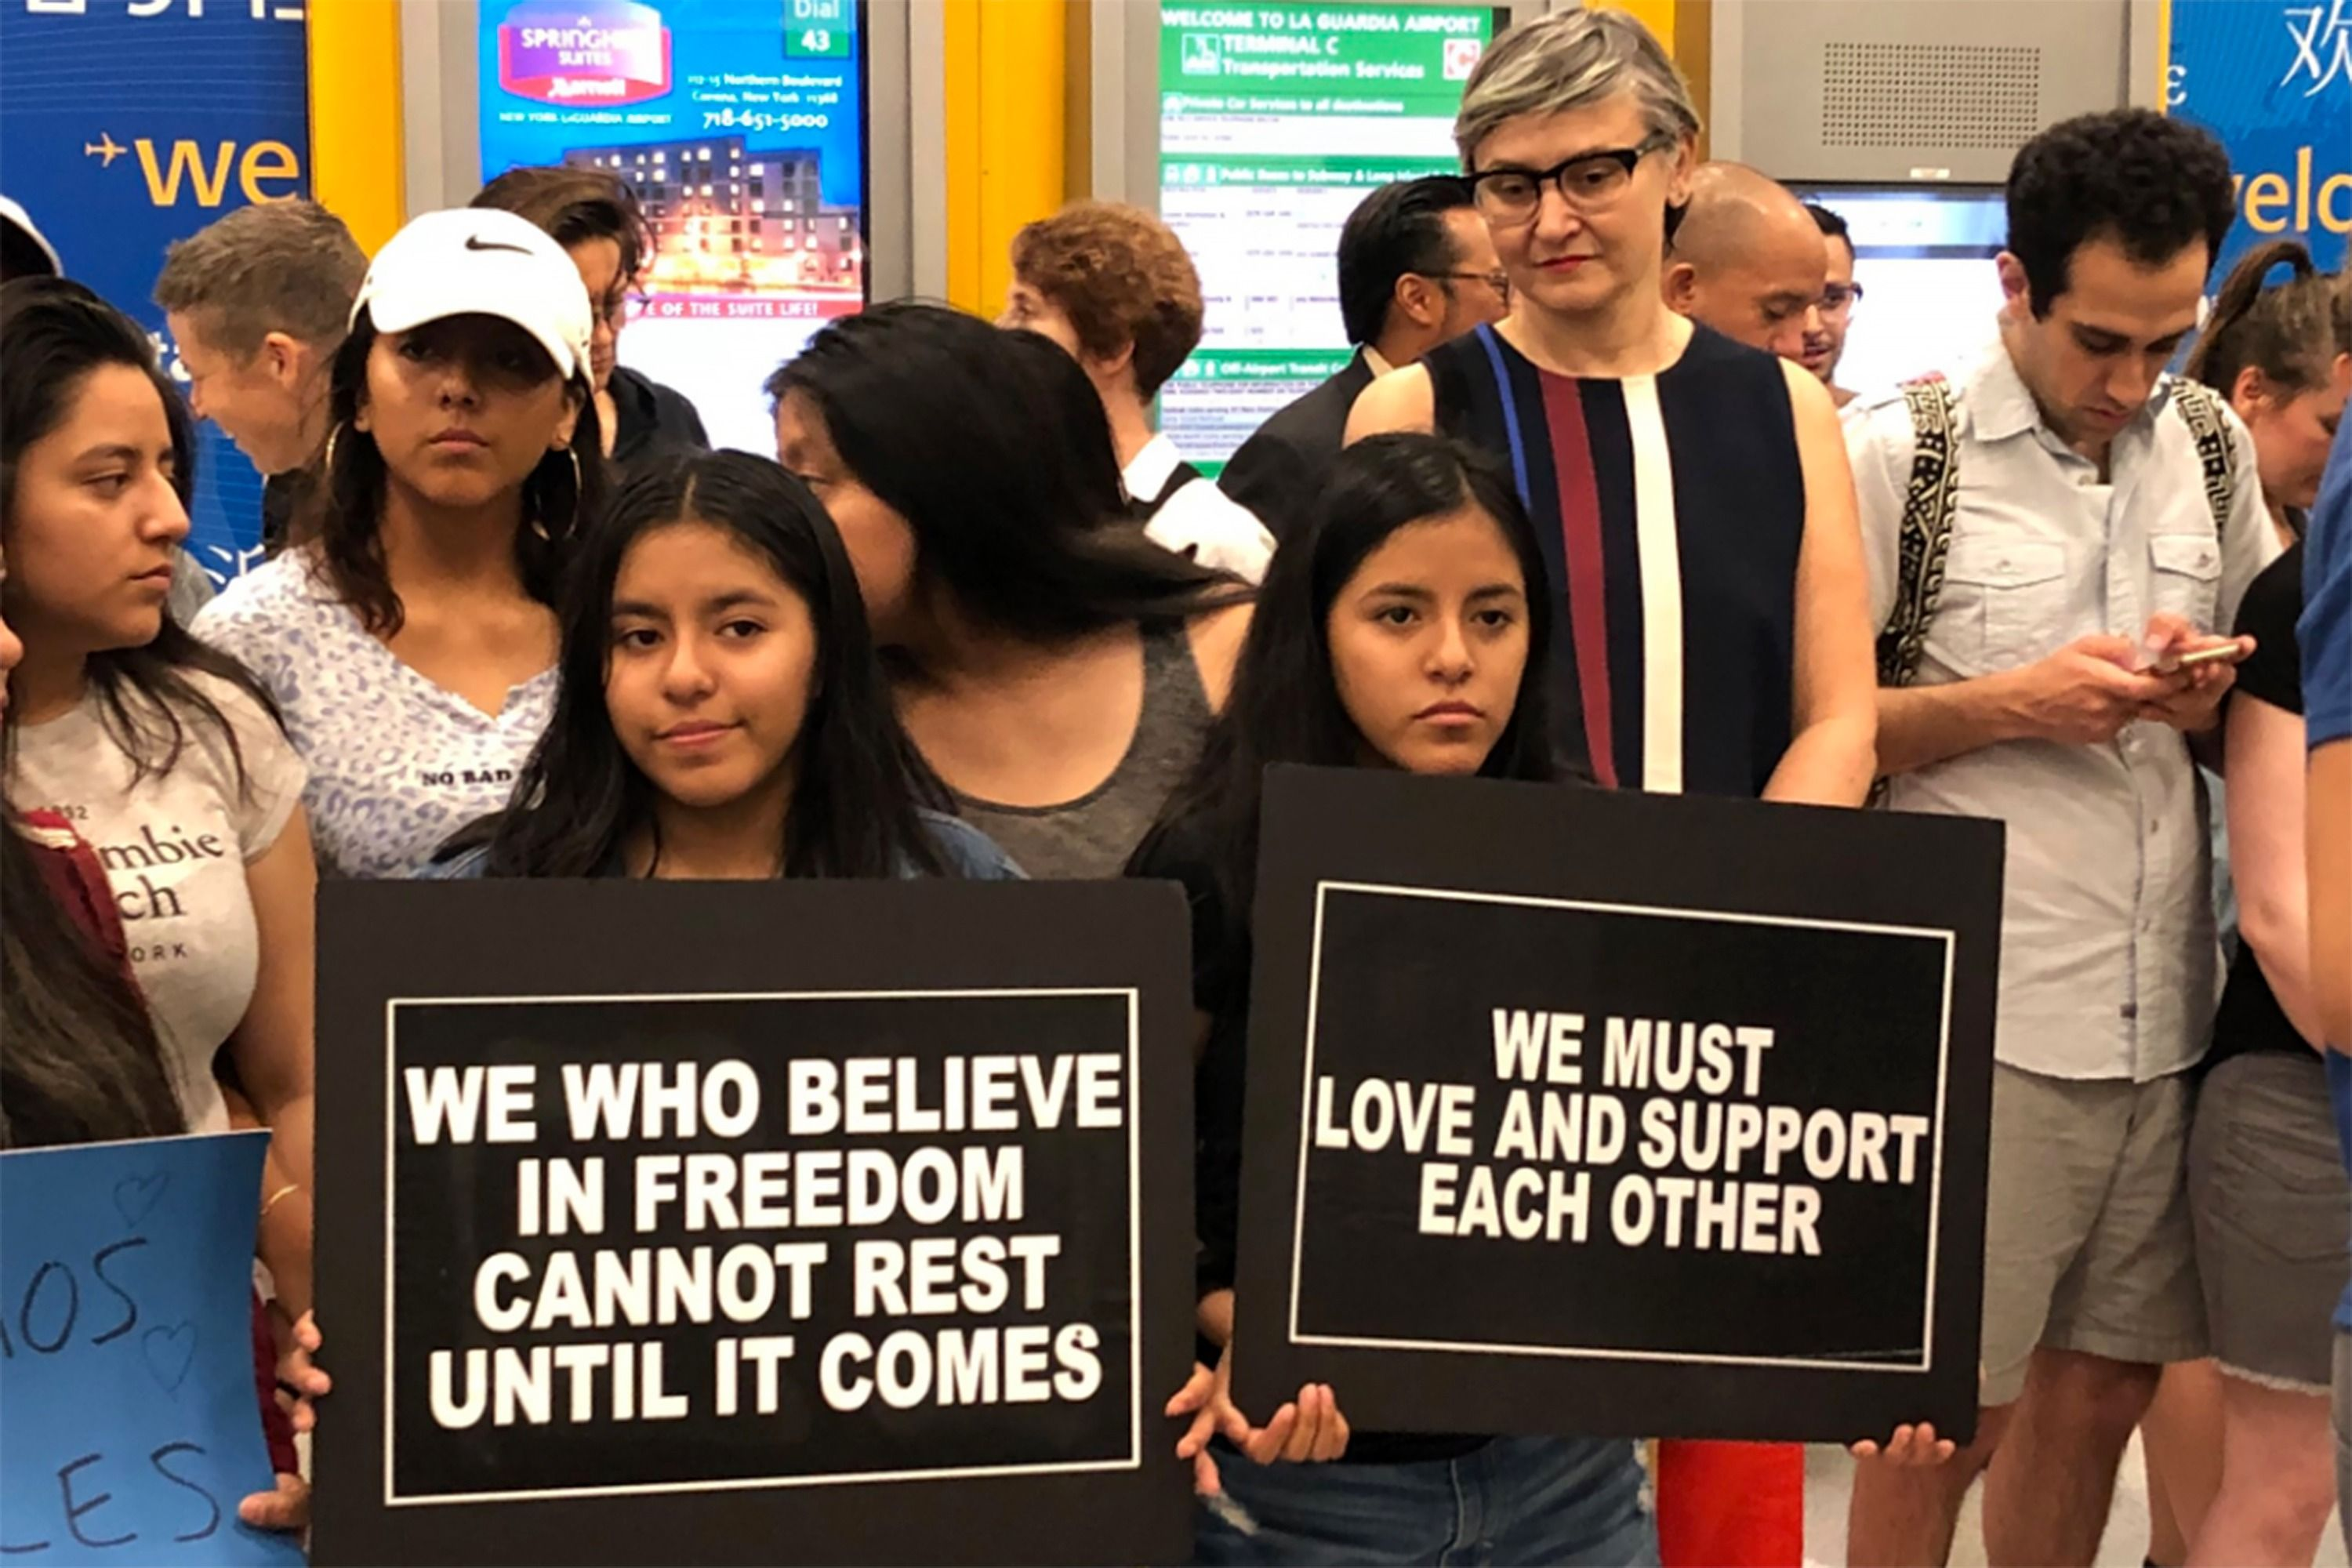 Jewish group supports separated children at laguardia the forward jewish groups lead protesters at laguardia airport to greet migrant children m4hsunfo